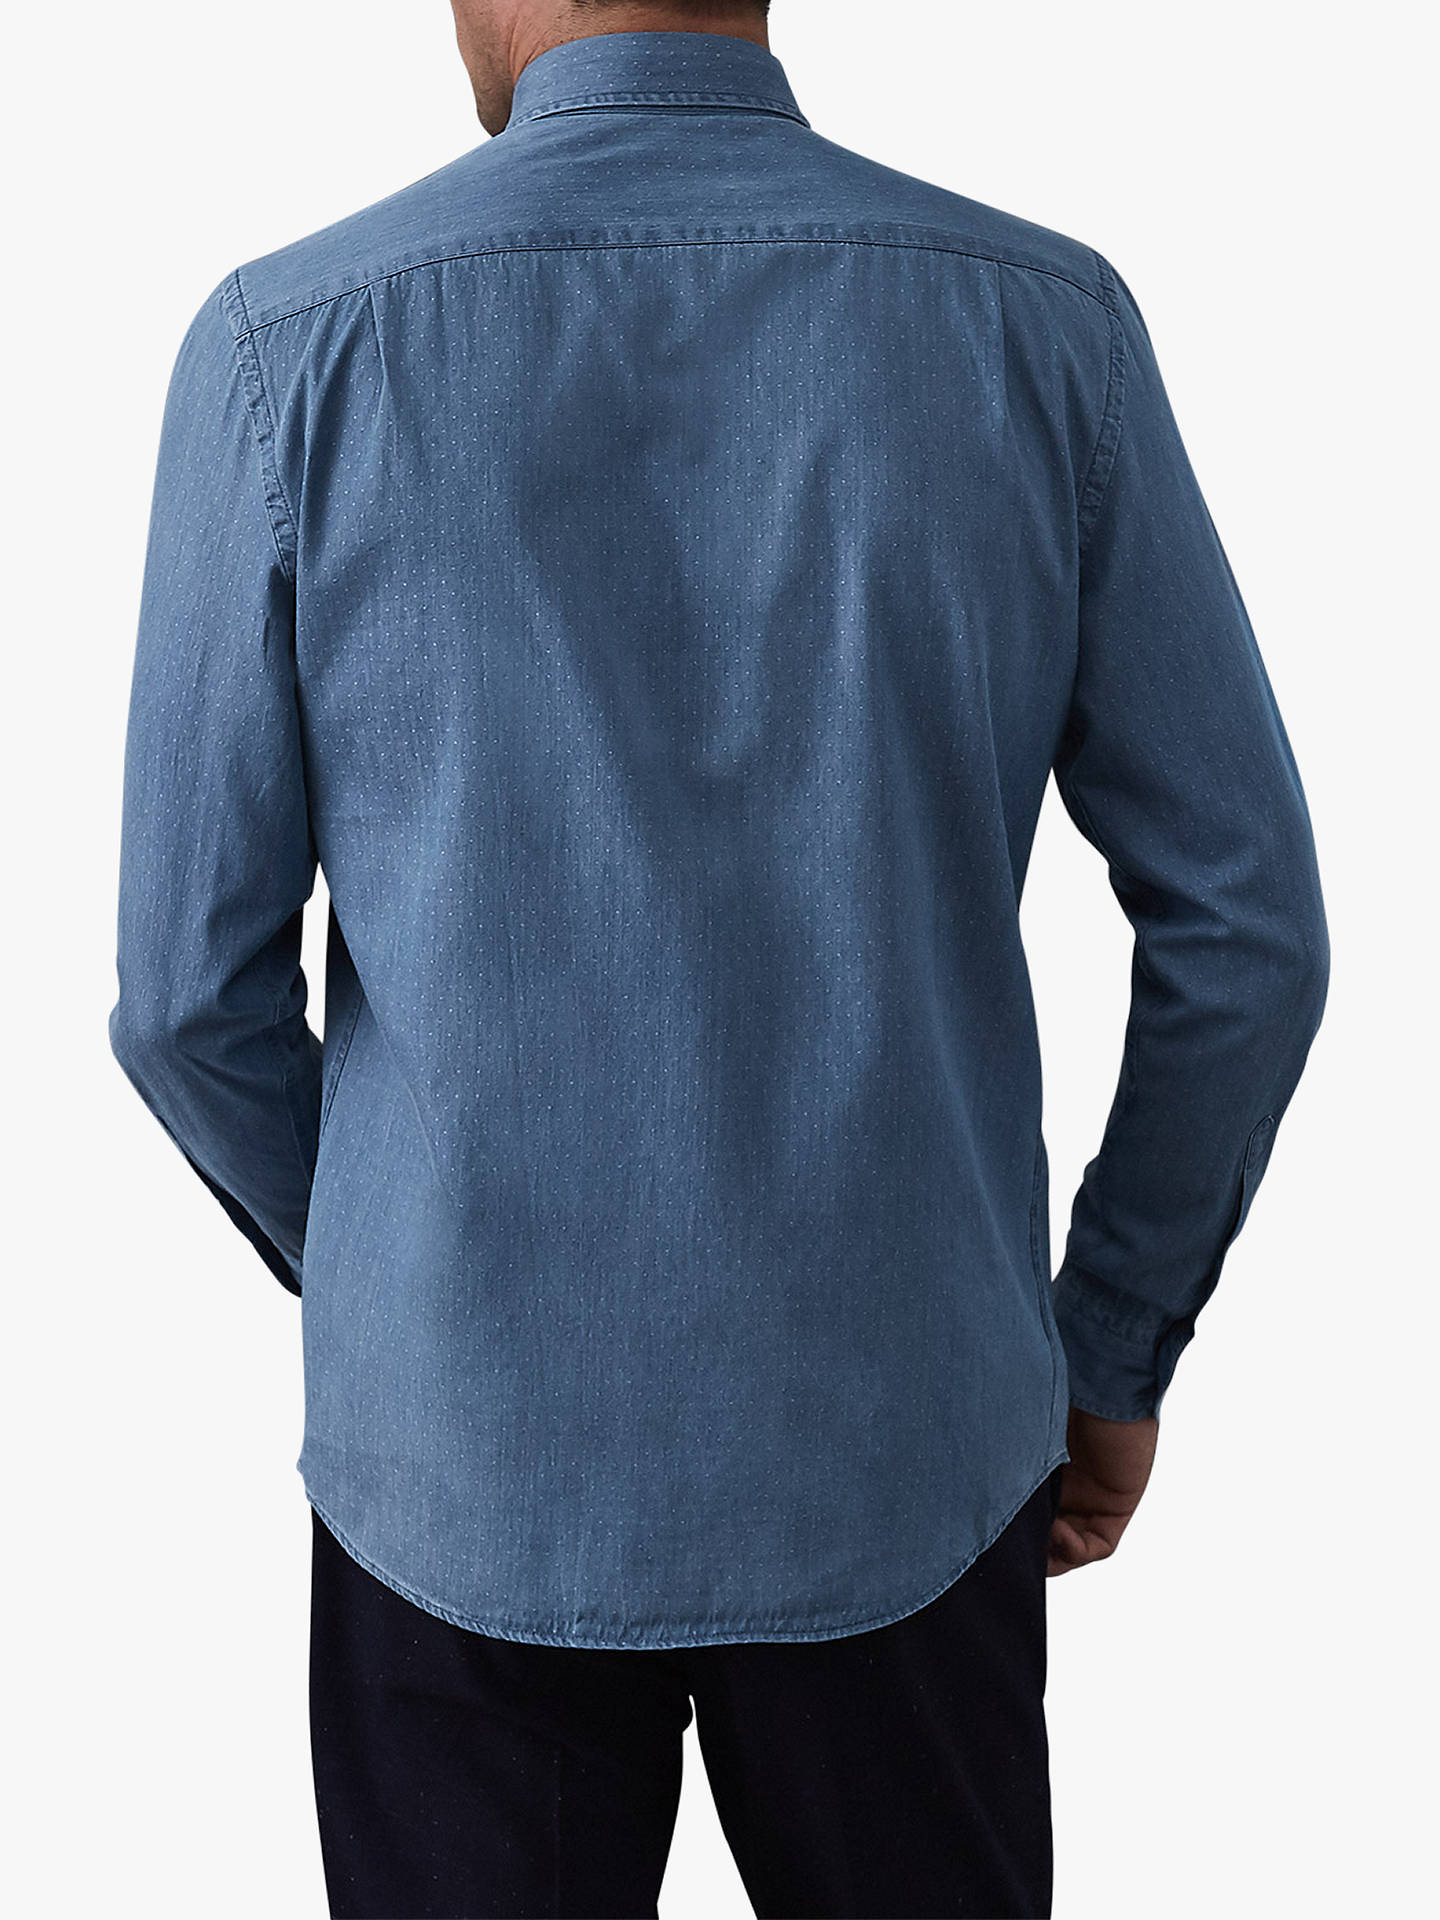 BuyReiss Thatcher Pin Dot Chambray Shirt, Blue, S Online at johnlewis.com